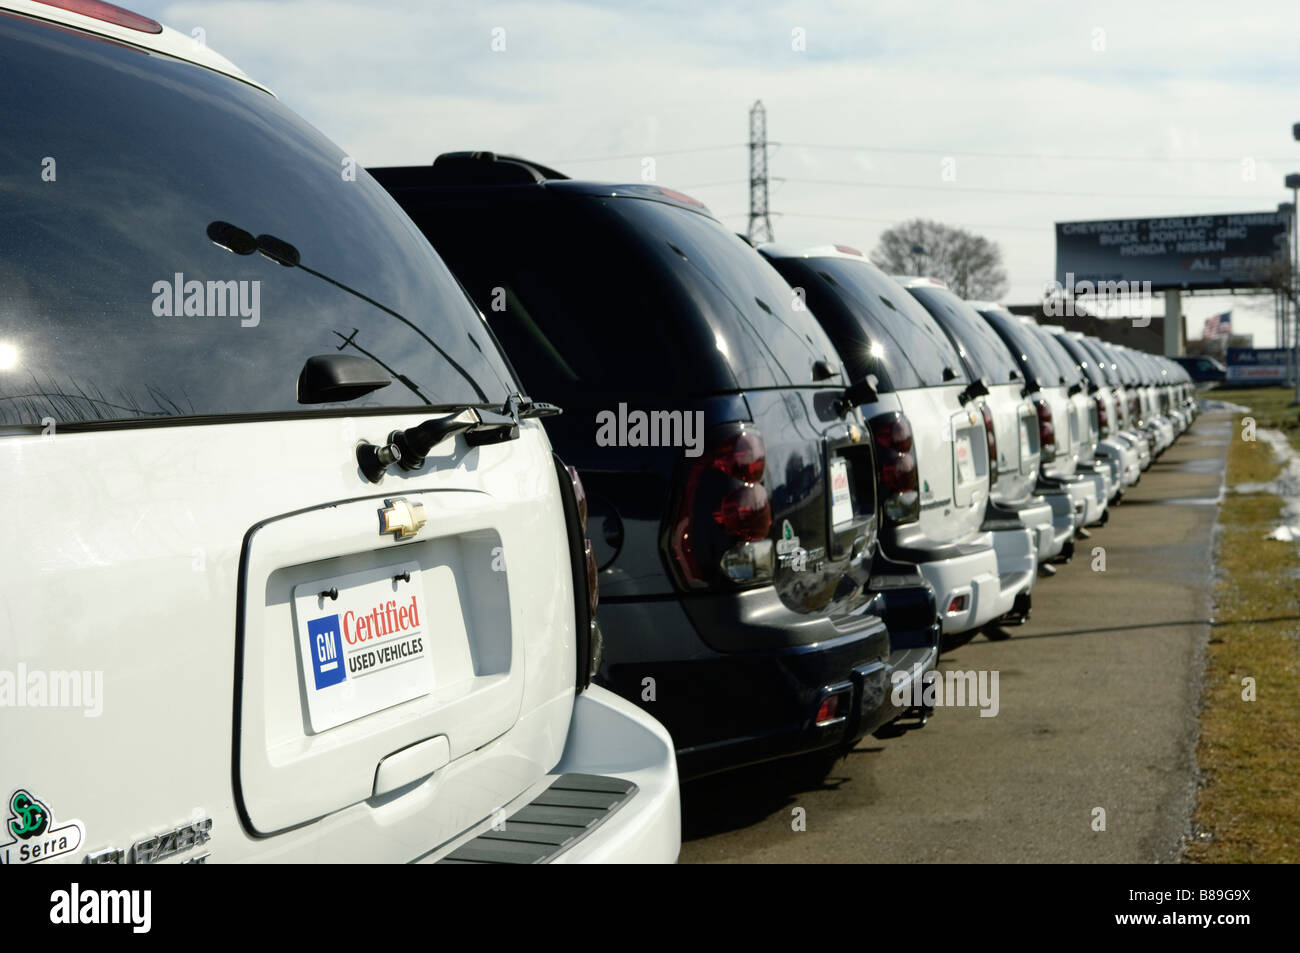 Used Chevrolet Trailblazers and other GM SUVs for sale at an auto ...